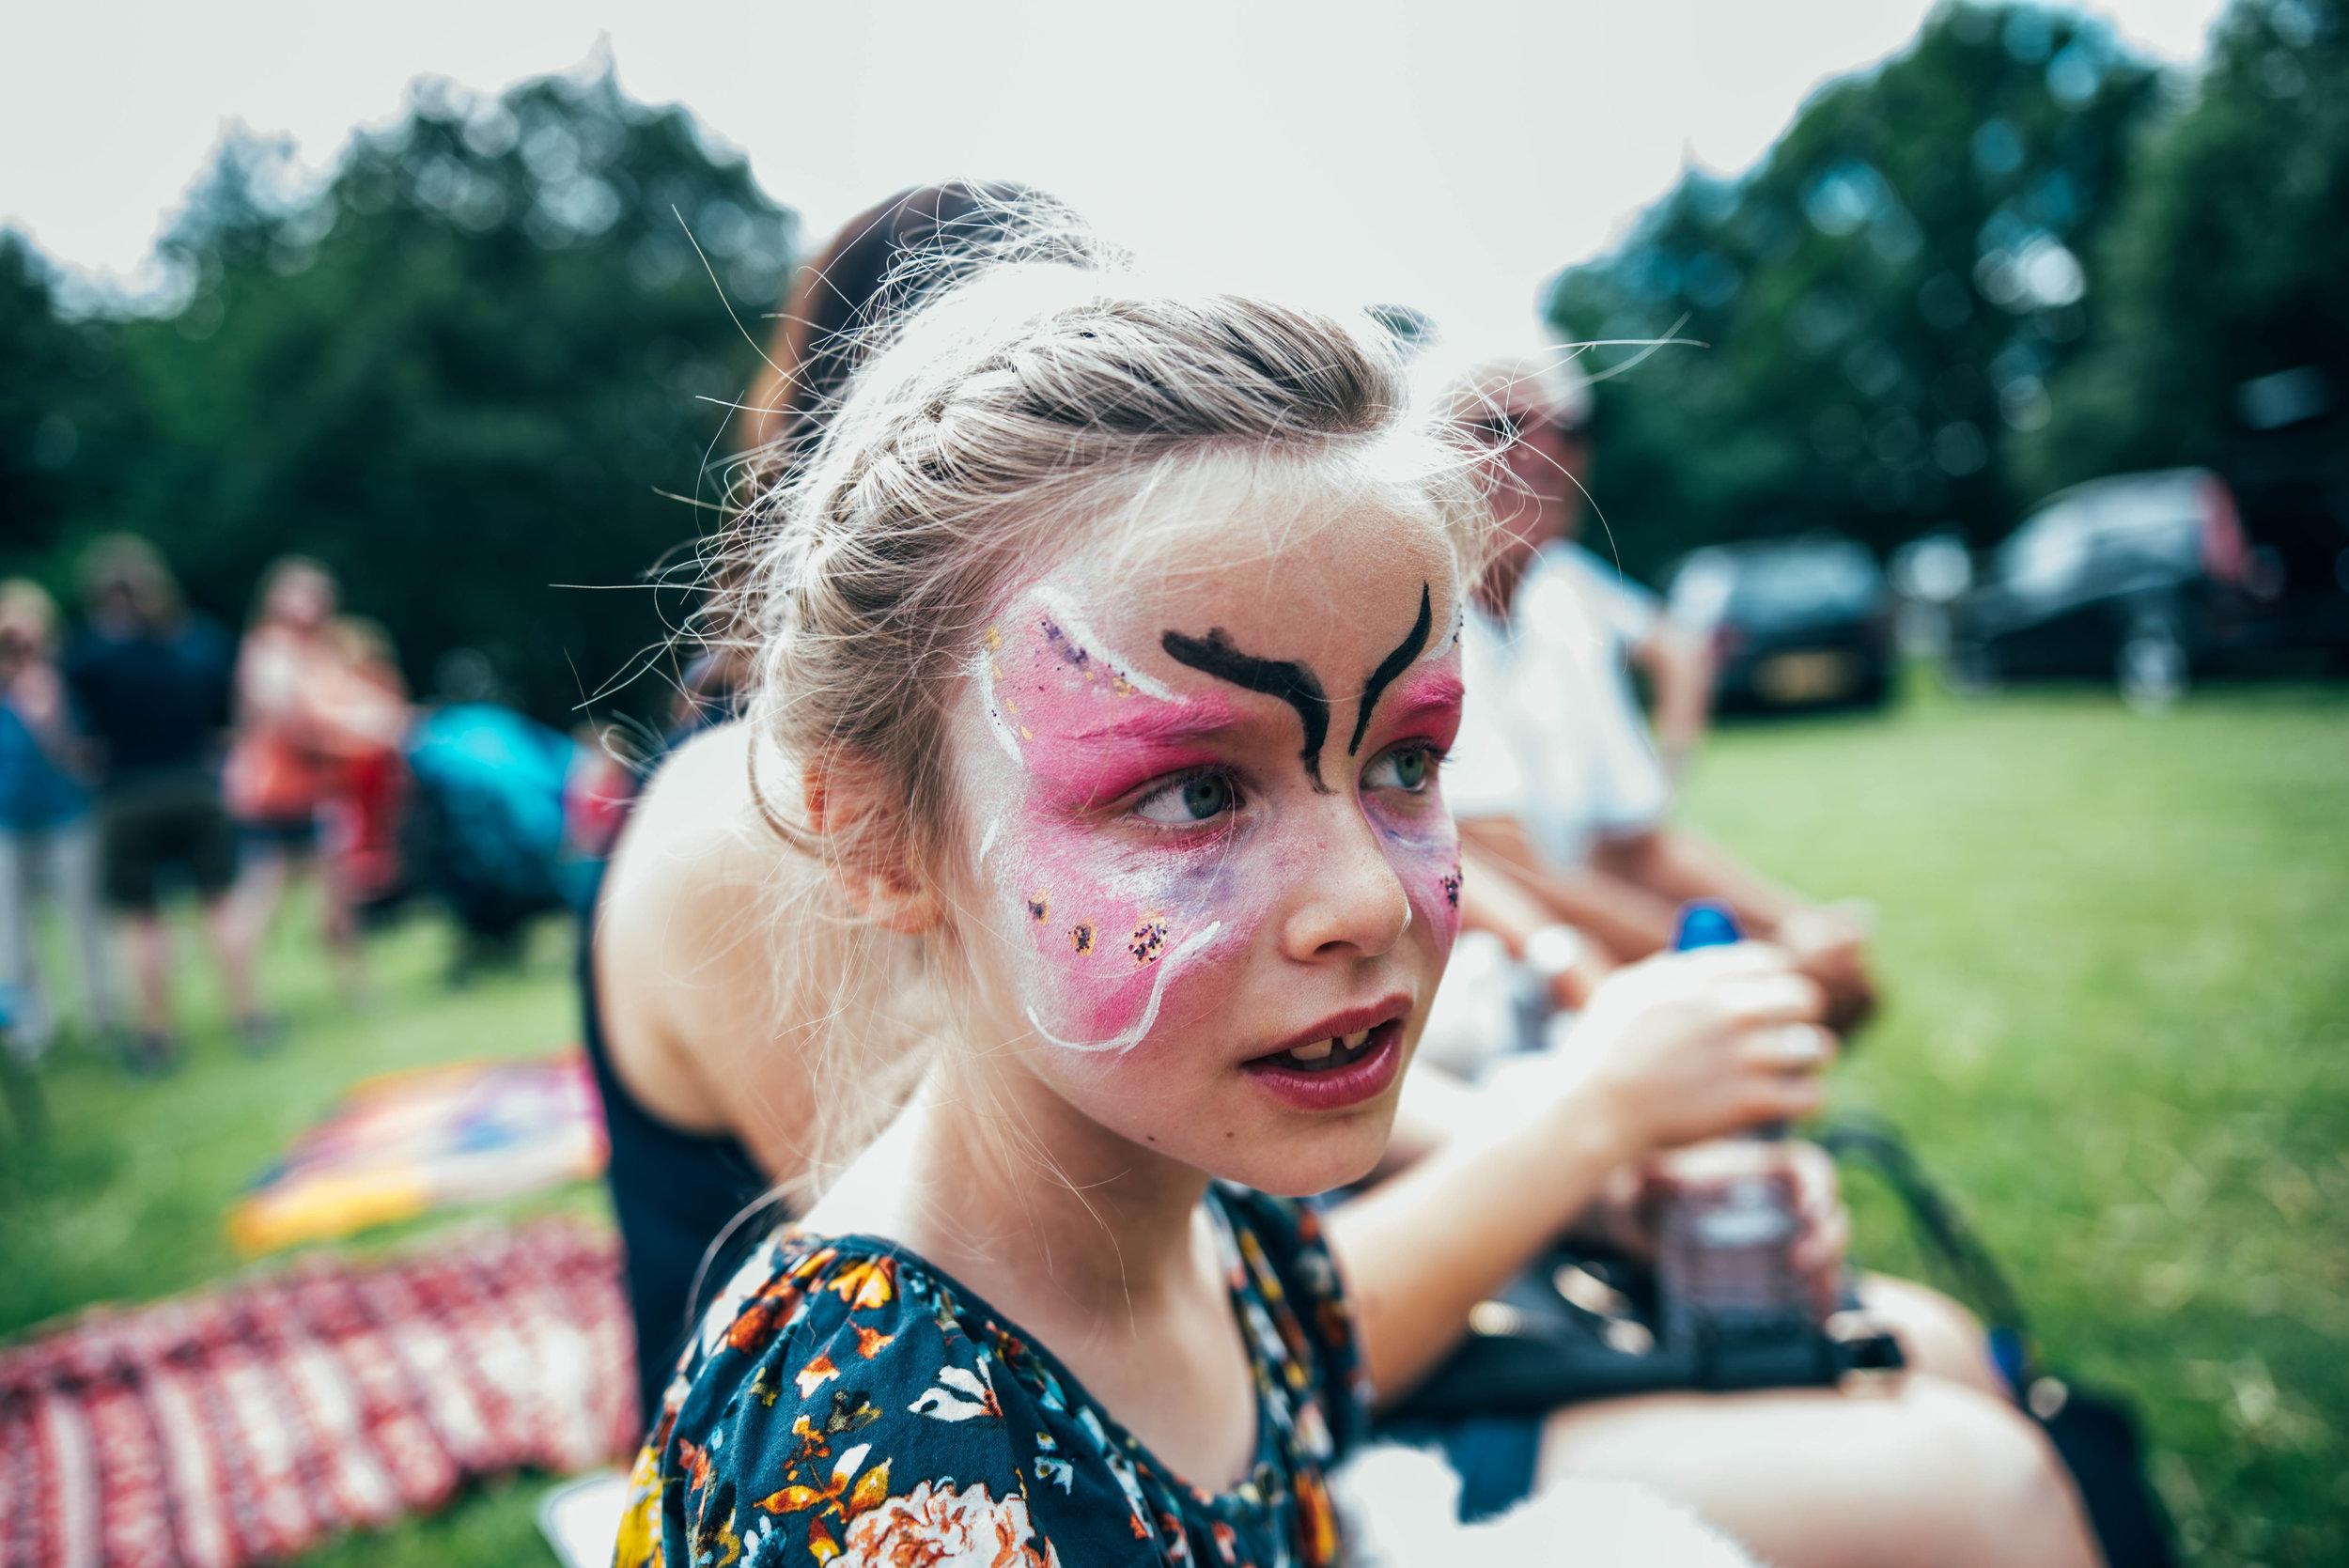 Young girl with butterfly face paint at festival Essex UK Documentary Portrait Photographer